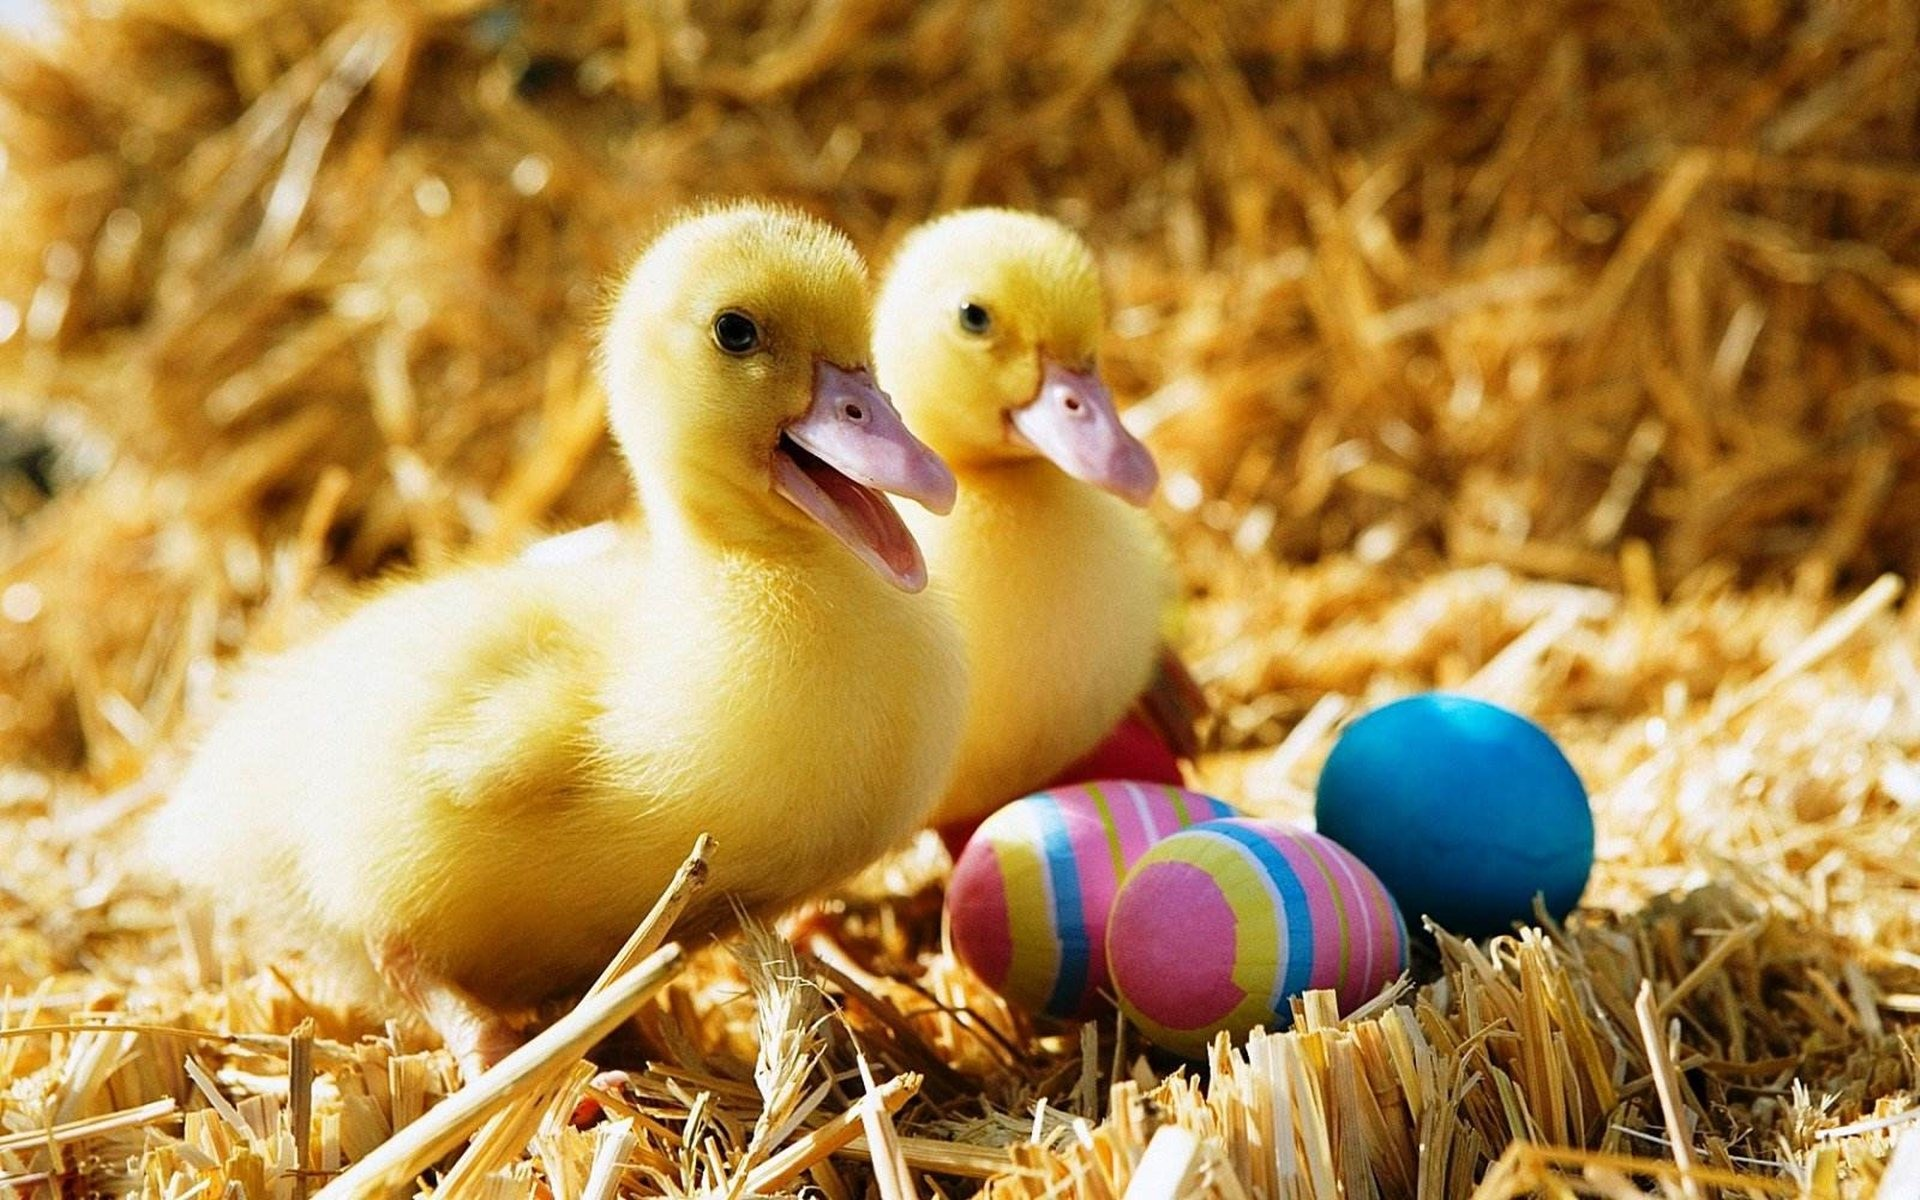 Baby Duck Wallpaper · Baby Duck And Colorful Easter Eggs HD Wallpaper #04101